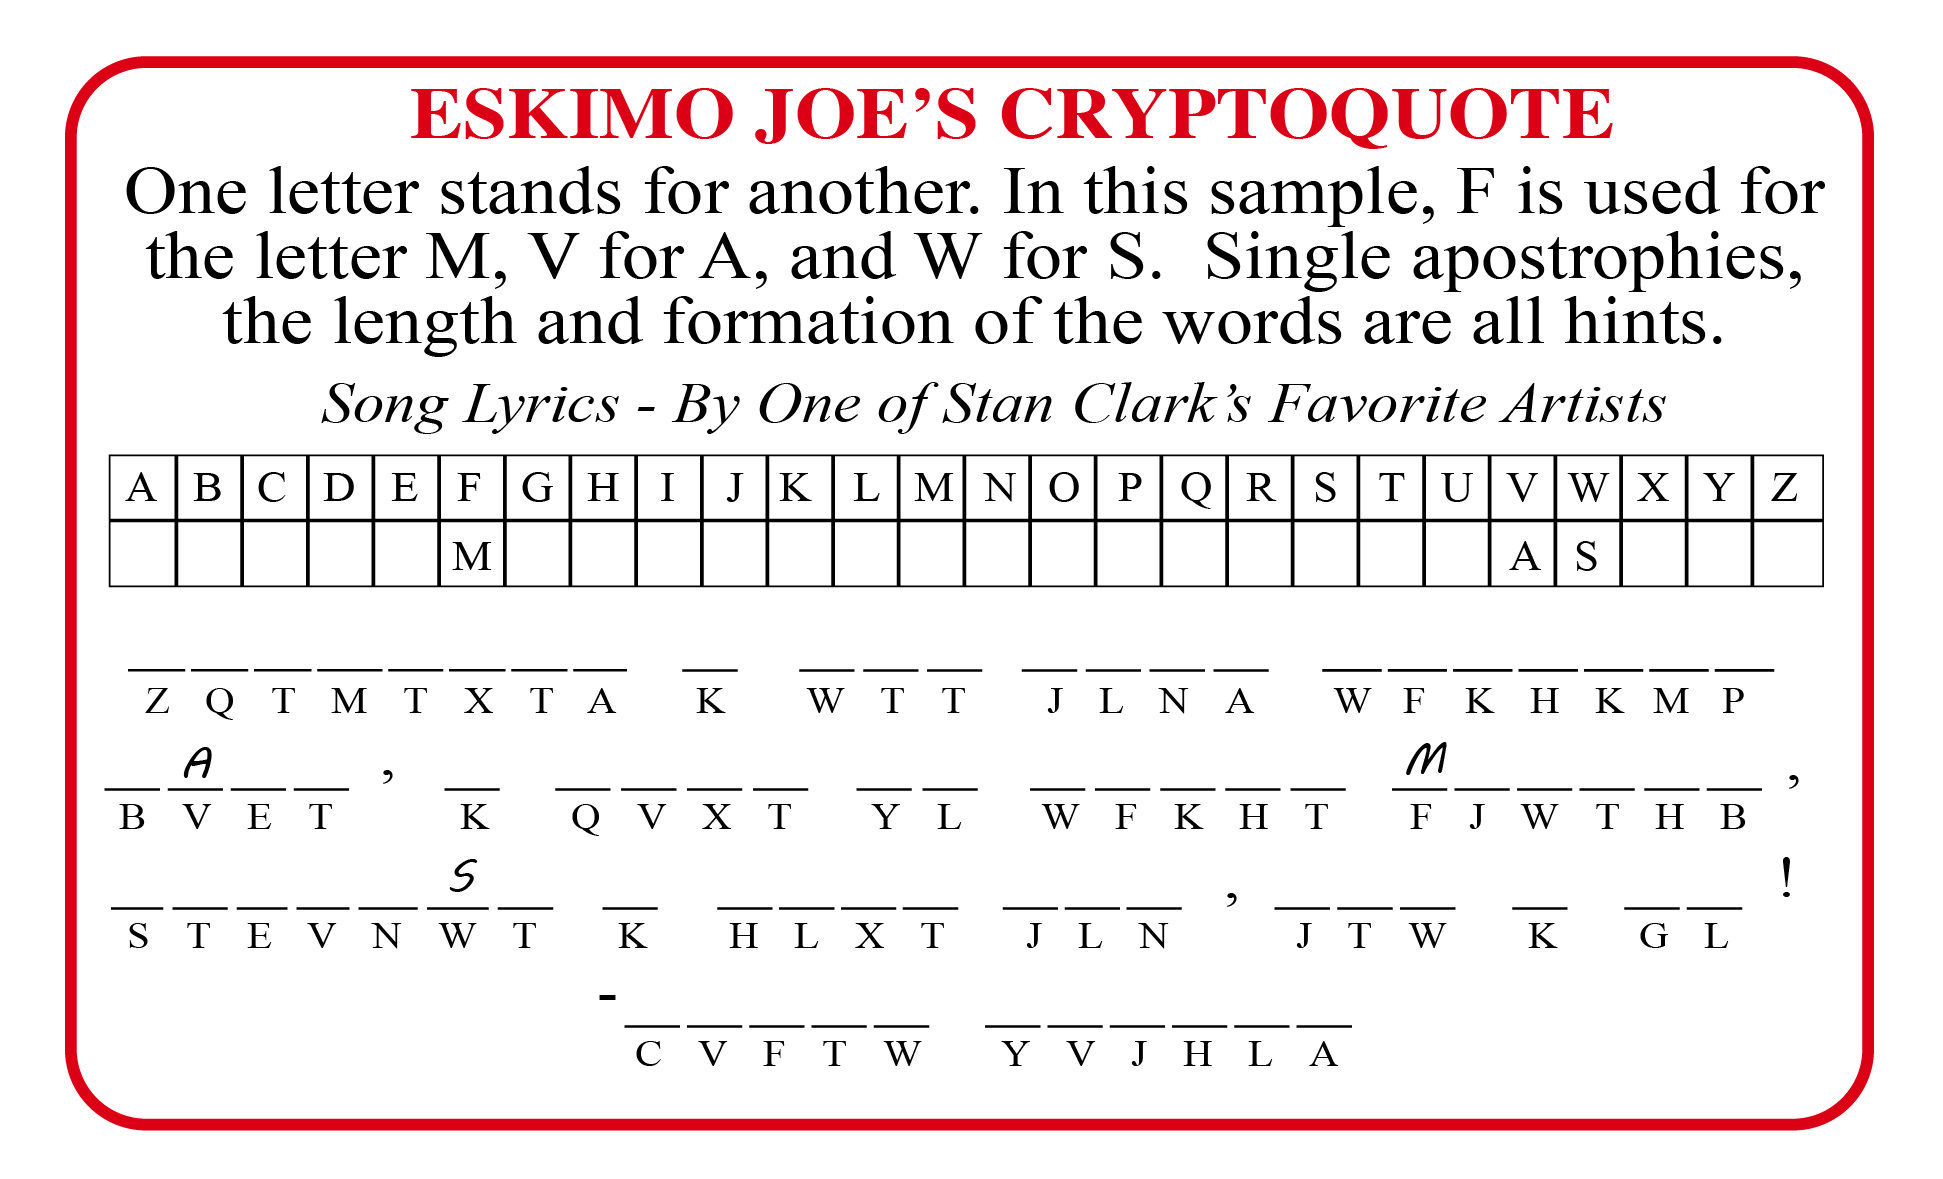 crypt plus answers1-01_0